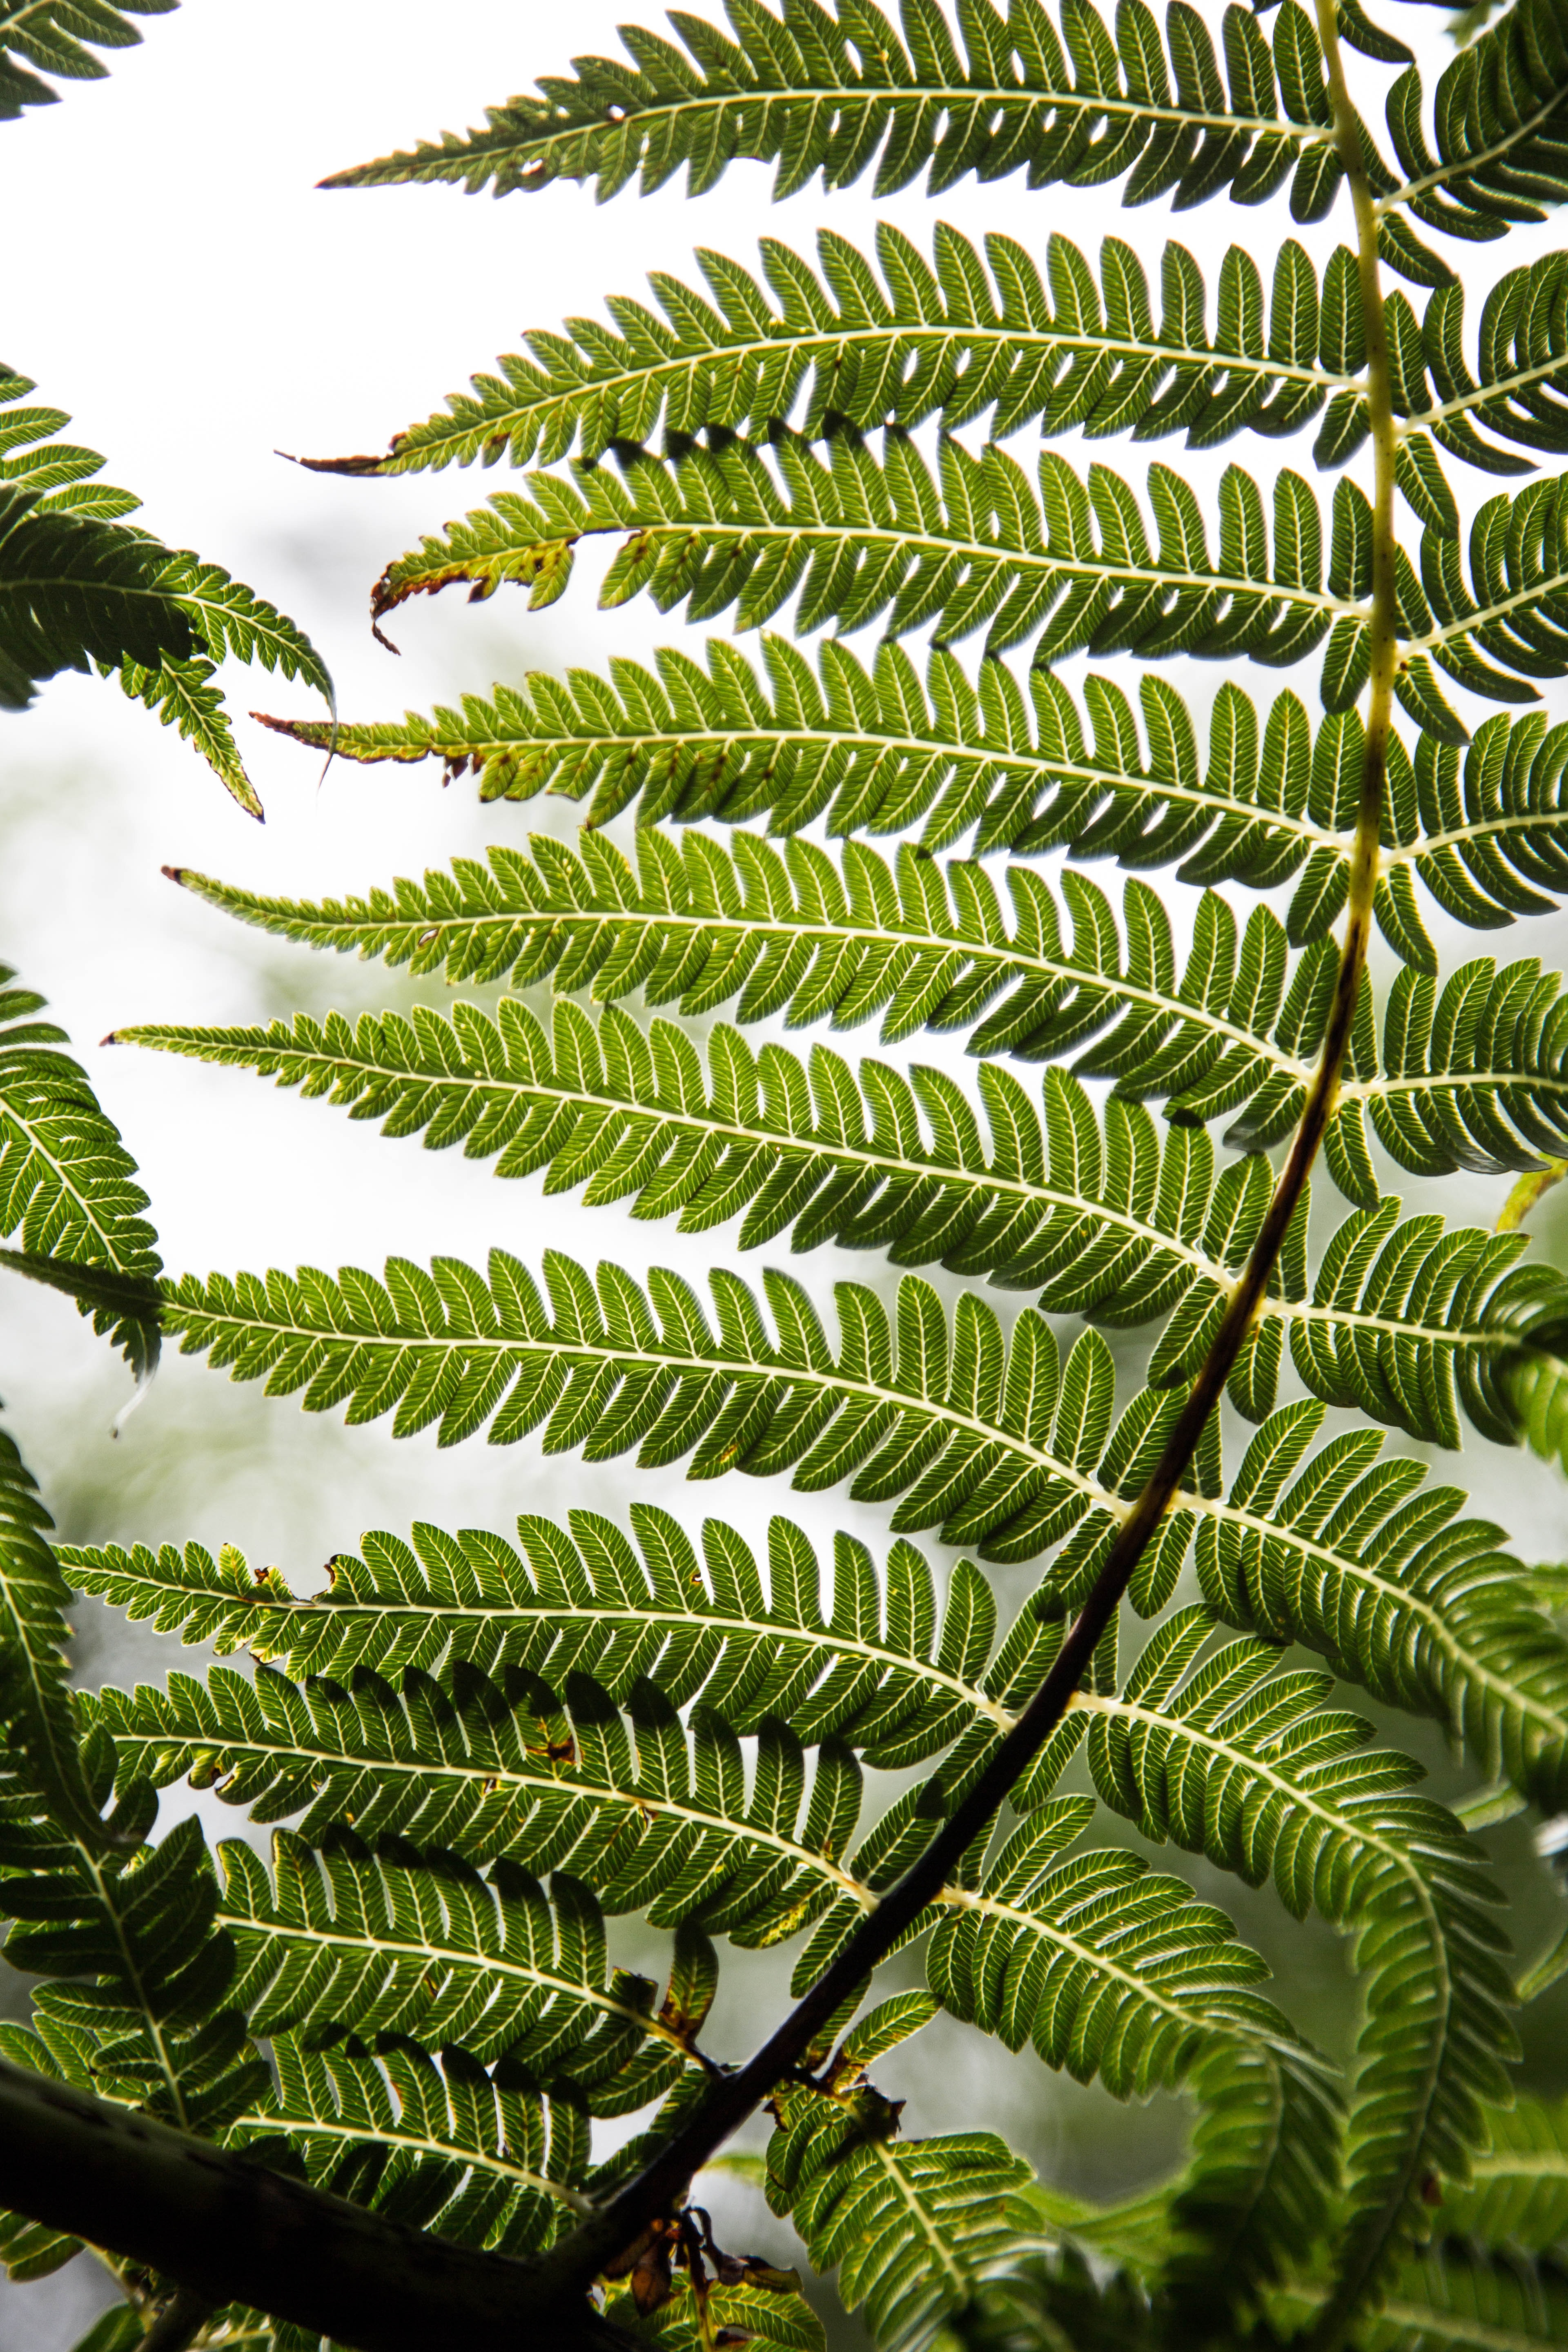 143255 download wallpaper Nature, Plant, Fern, Sheet, Leaf, Carved screensavers and pictures for free